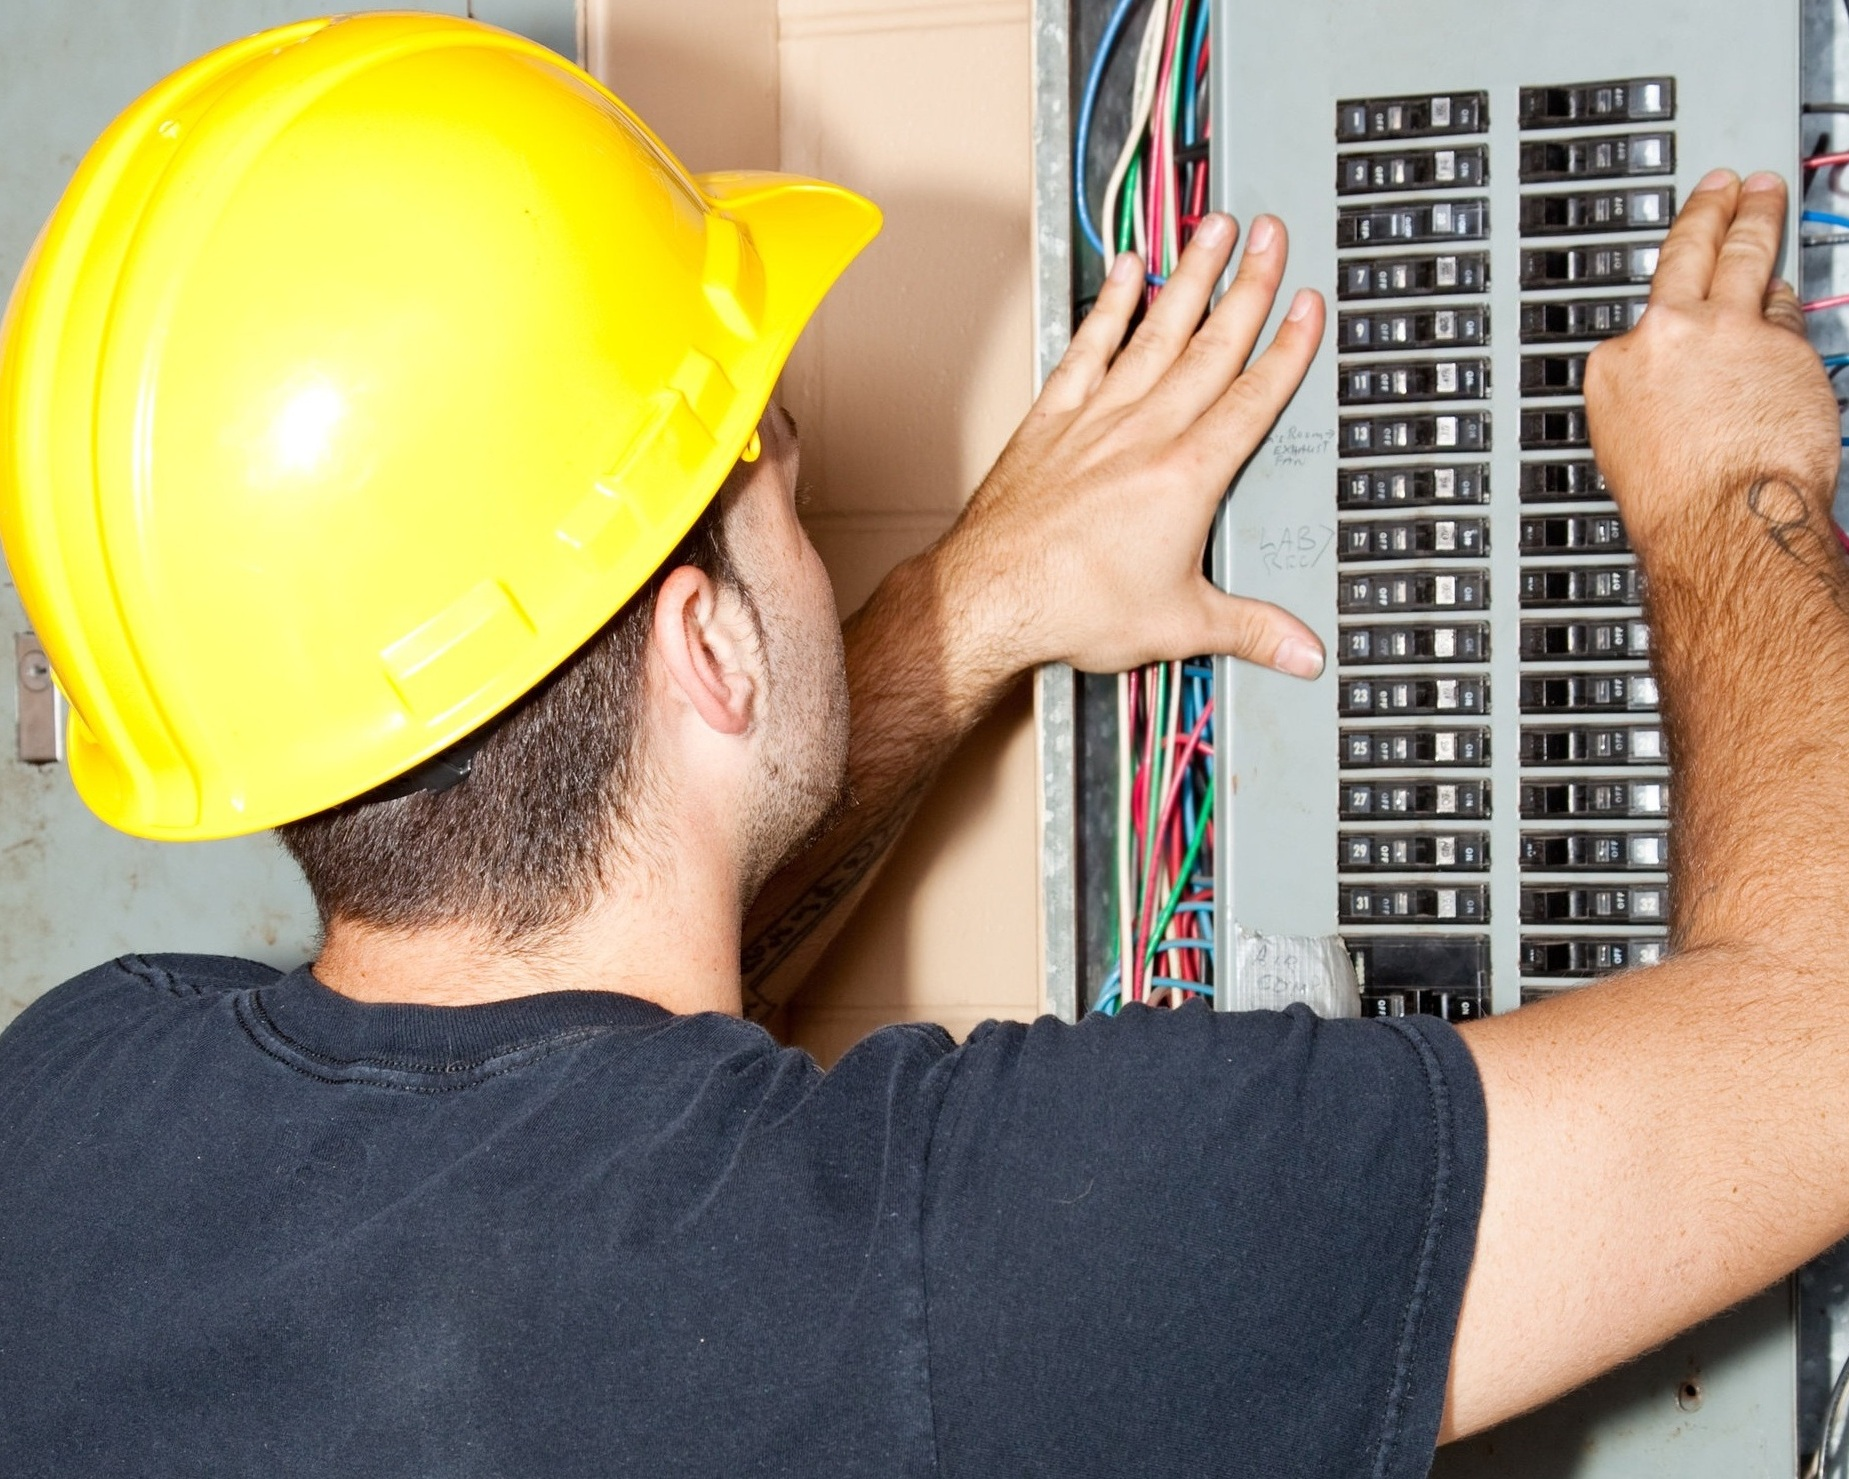 Electrical Inspection Sherwood Park AB | Electrical Inspection Fort Saskatchewan AB | Electrical Inspection Edmonton AB | Electrical Inspection St. Albert AB